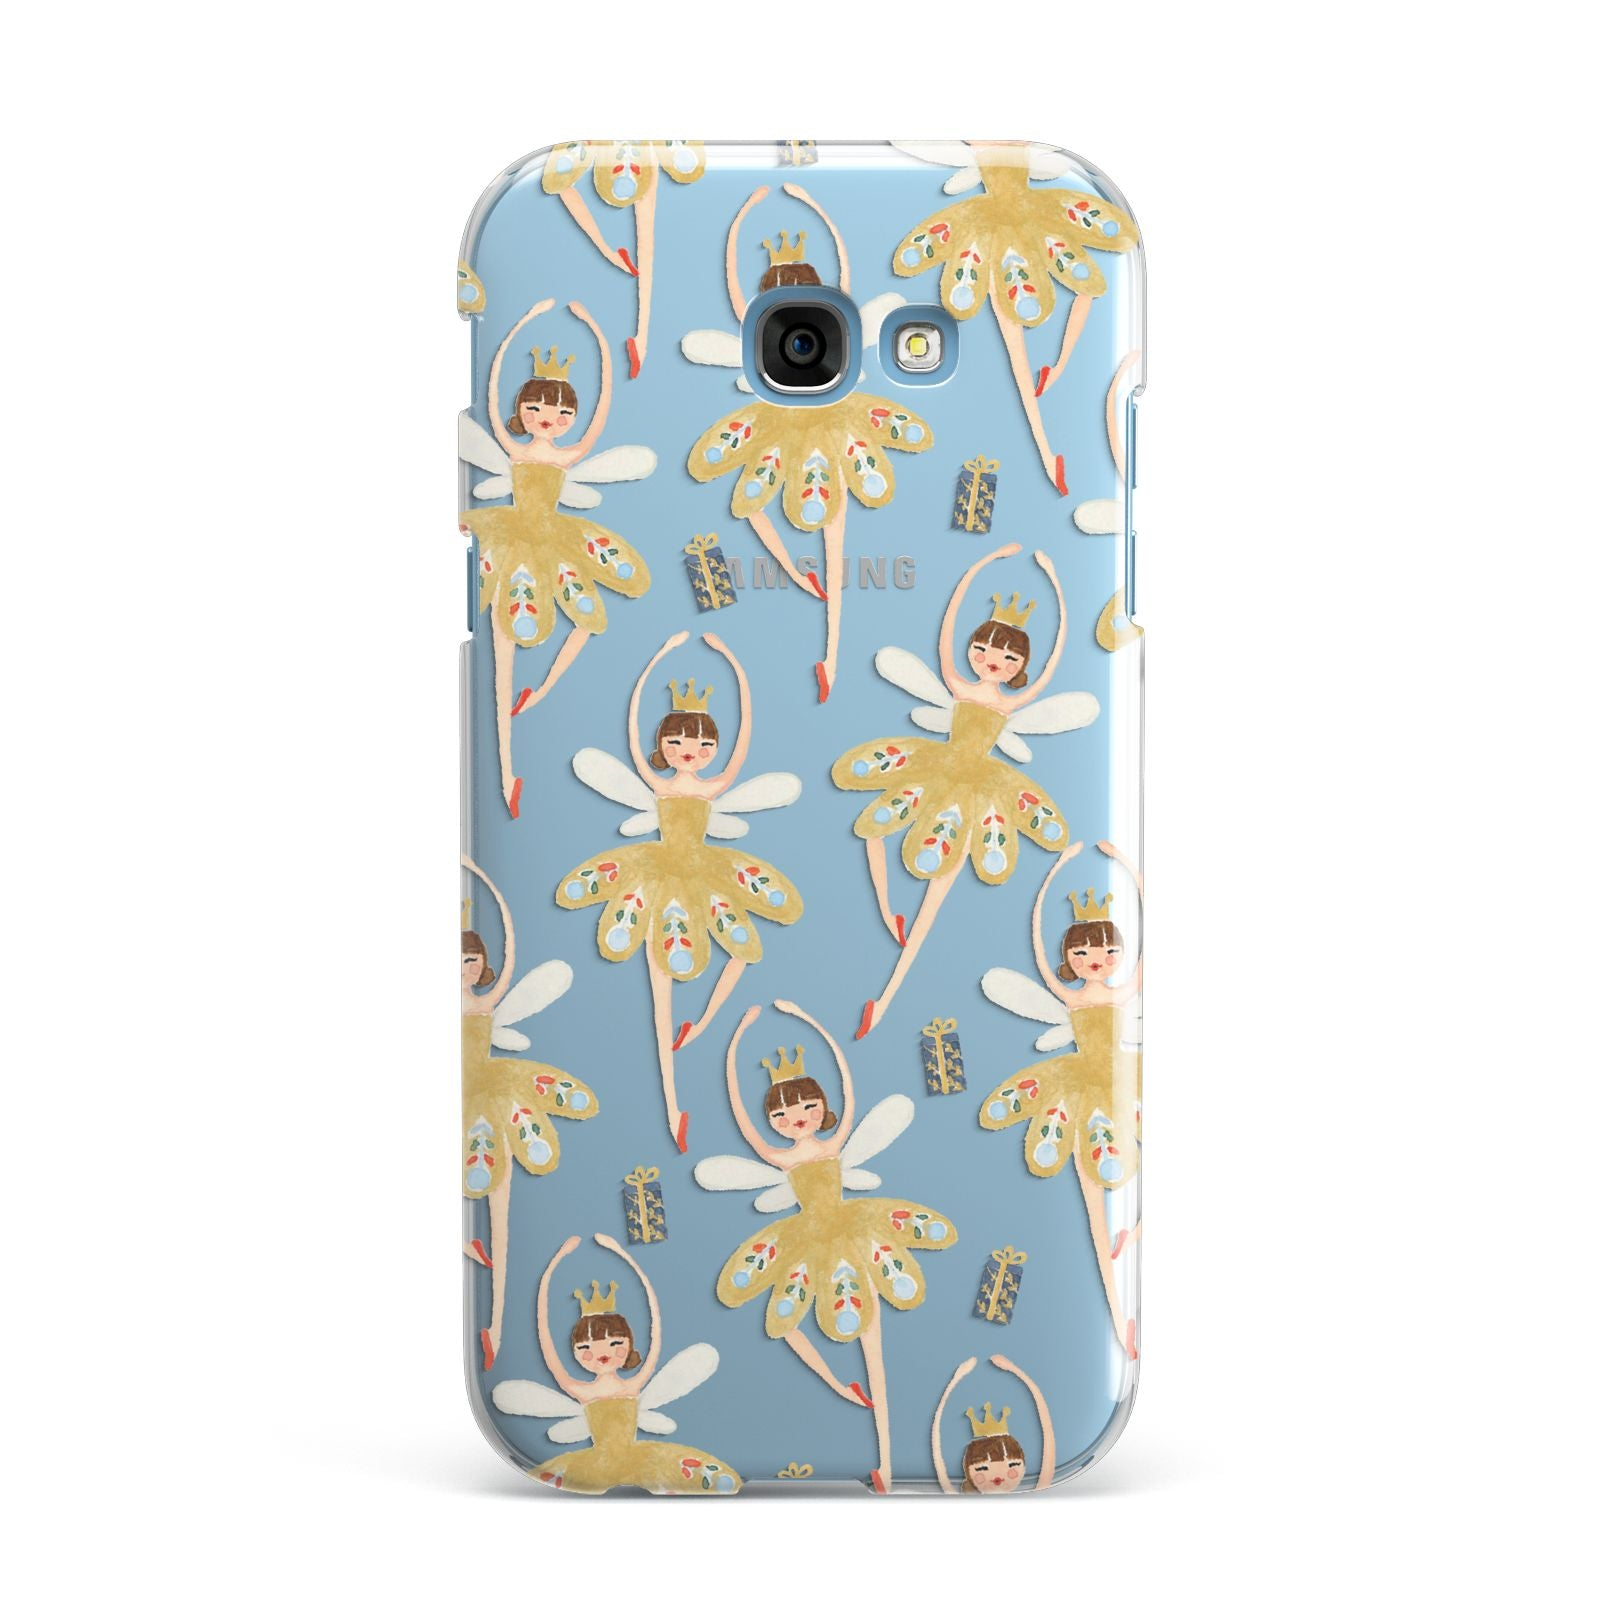 Dancing ballerina princess Samsung Galaxy A7 2017 Case